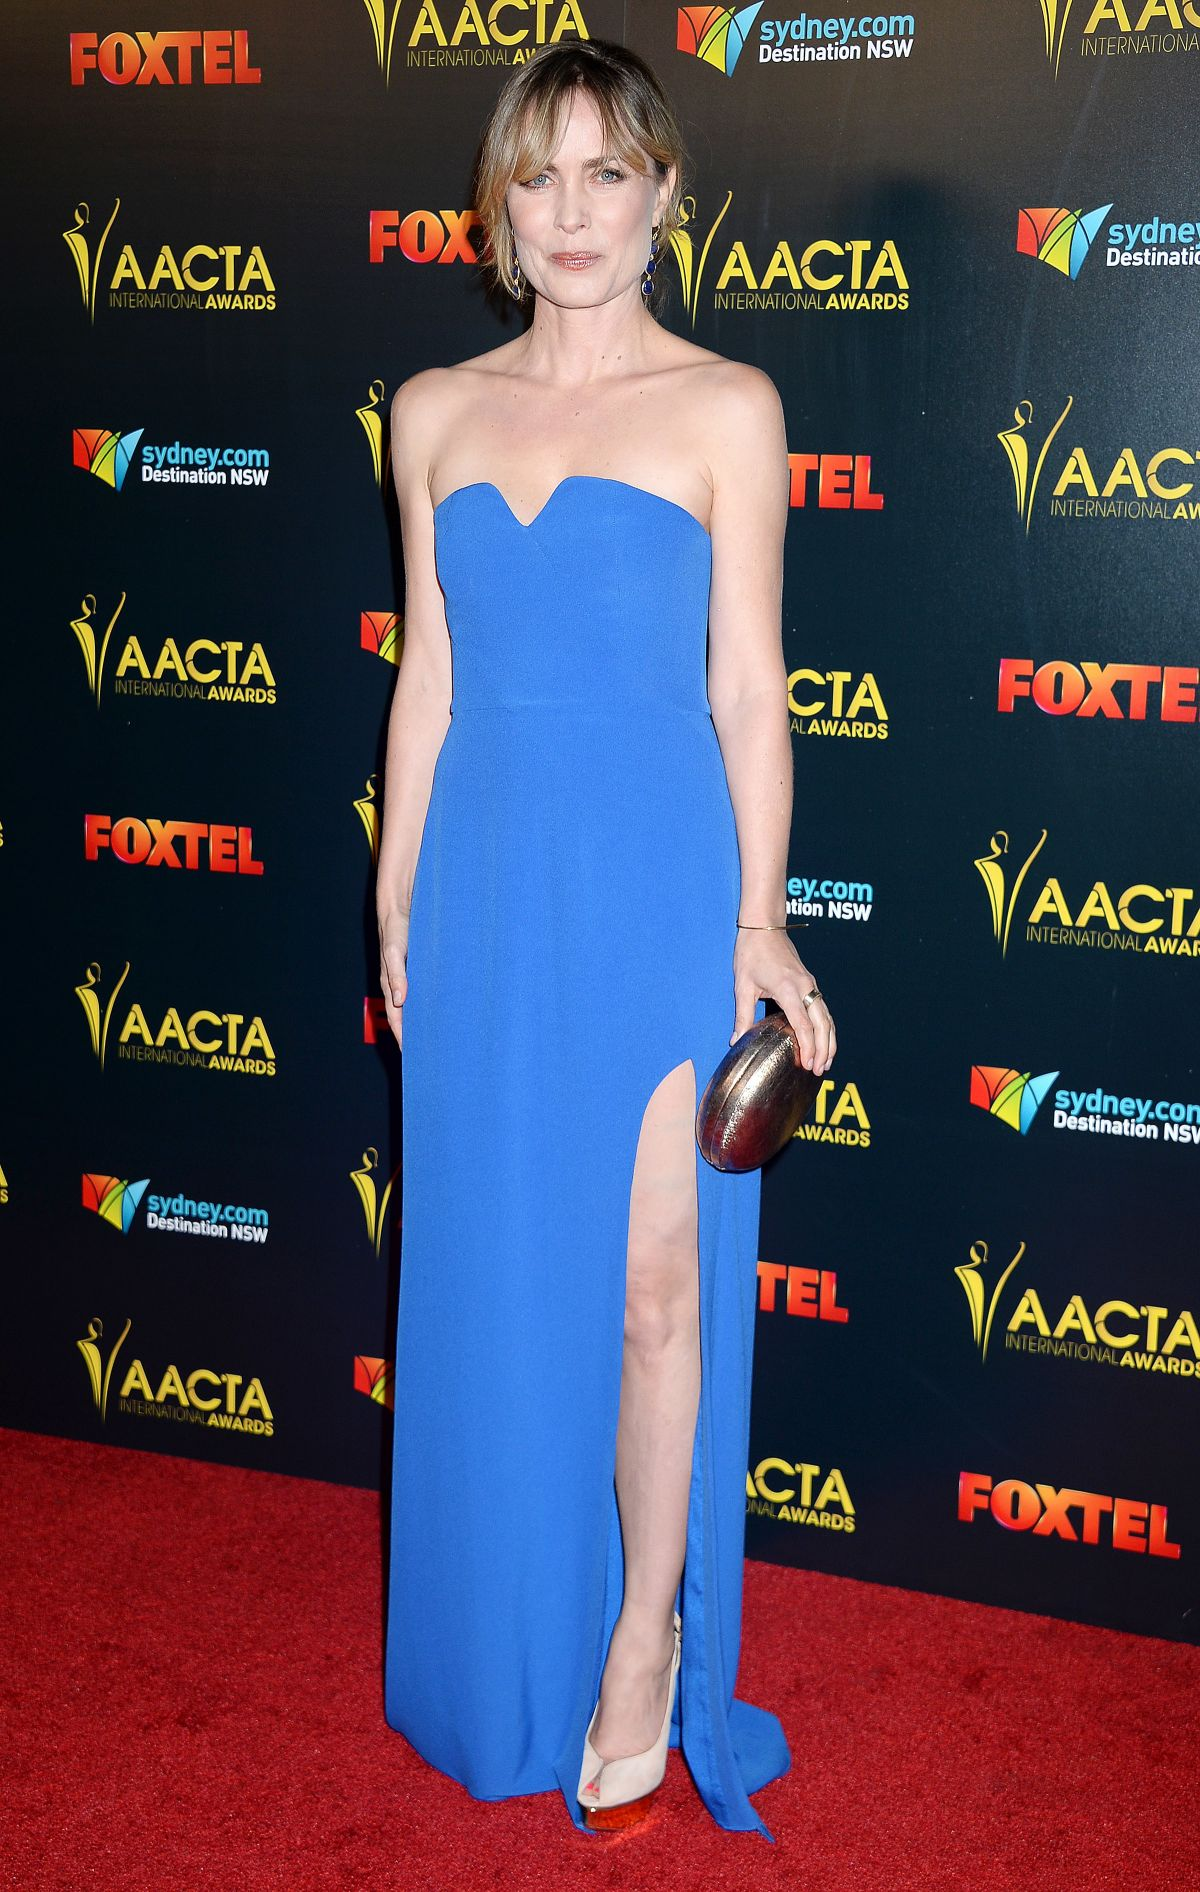 RADHA MITCHELL at AACTA International Awards 2017 in Hollywood 01/06/2017